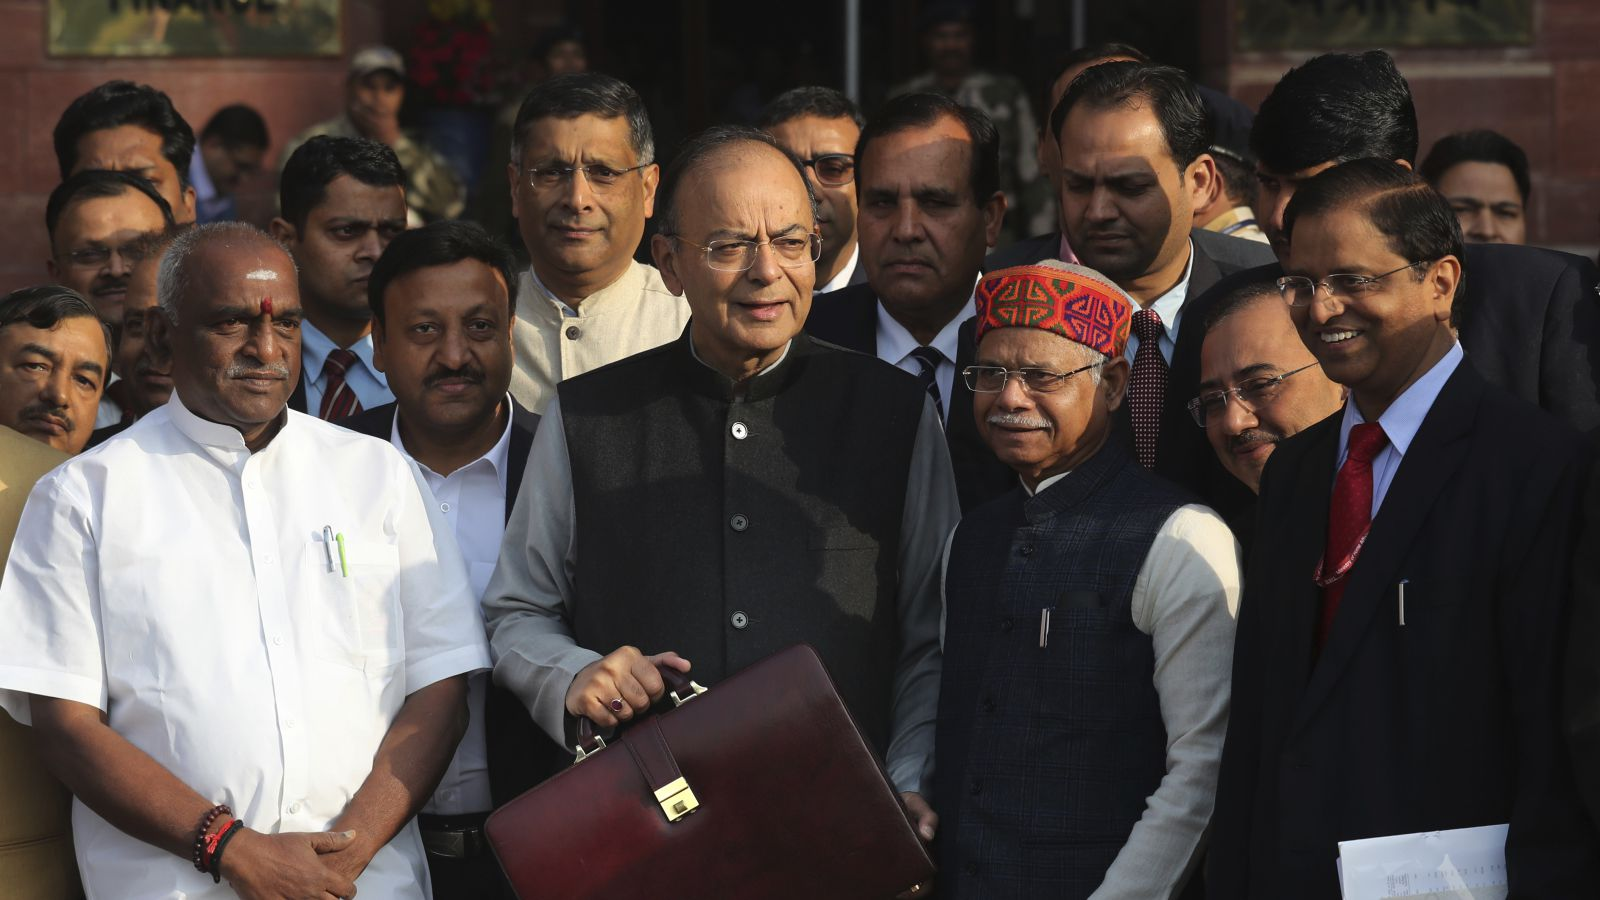 Indian Finance Minister Arun Jaitley, center, holds a briefcase containing federal budget documents leaves for parliament house with Junior Finace minsters Shiv Pratap Shukla, center right, and Pon Radhakrishnan, left, from his office in New Delhi, India, in New Delhi, India, Thursday, Feb. 1, 2018. Jaitley is expected to announce populist giveaways in an attempt to woo voters as this is the last budget of Indian Prime Minister Narendra Modi's government which will seek a second five-year tenure in May 2019 national elections.